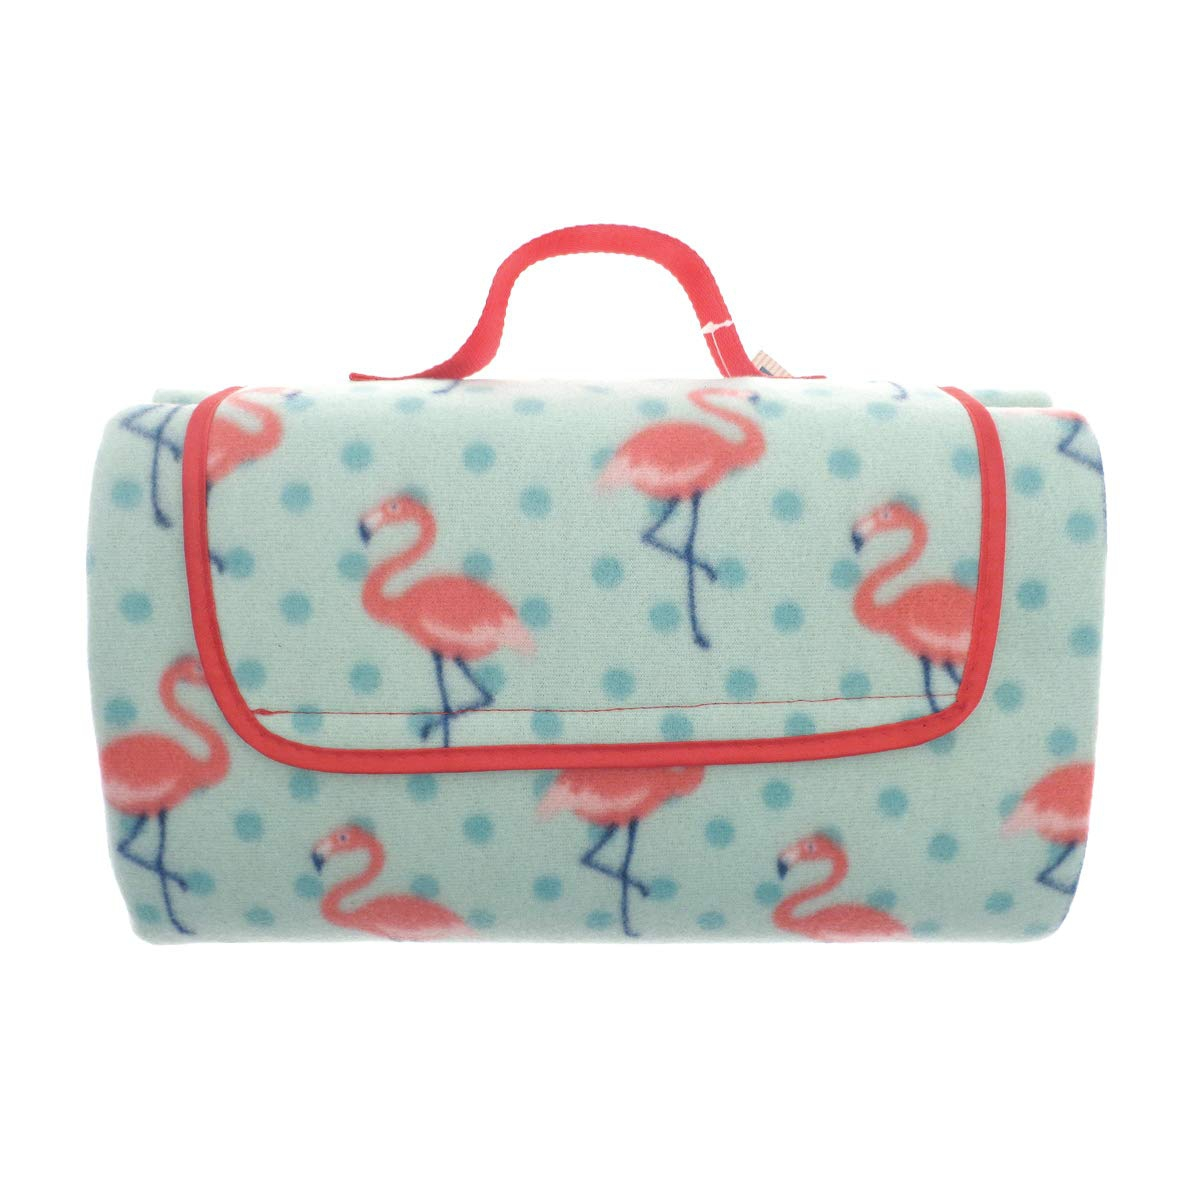 Al Fresco Waterproof Picnic Flamingo Rotary Fleece Blanket Throw